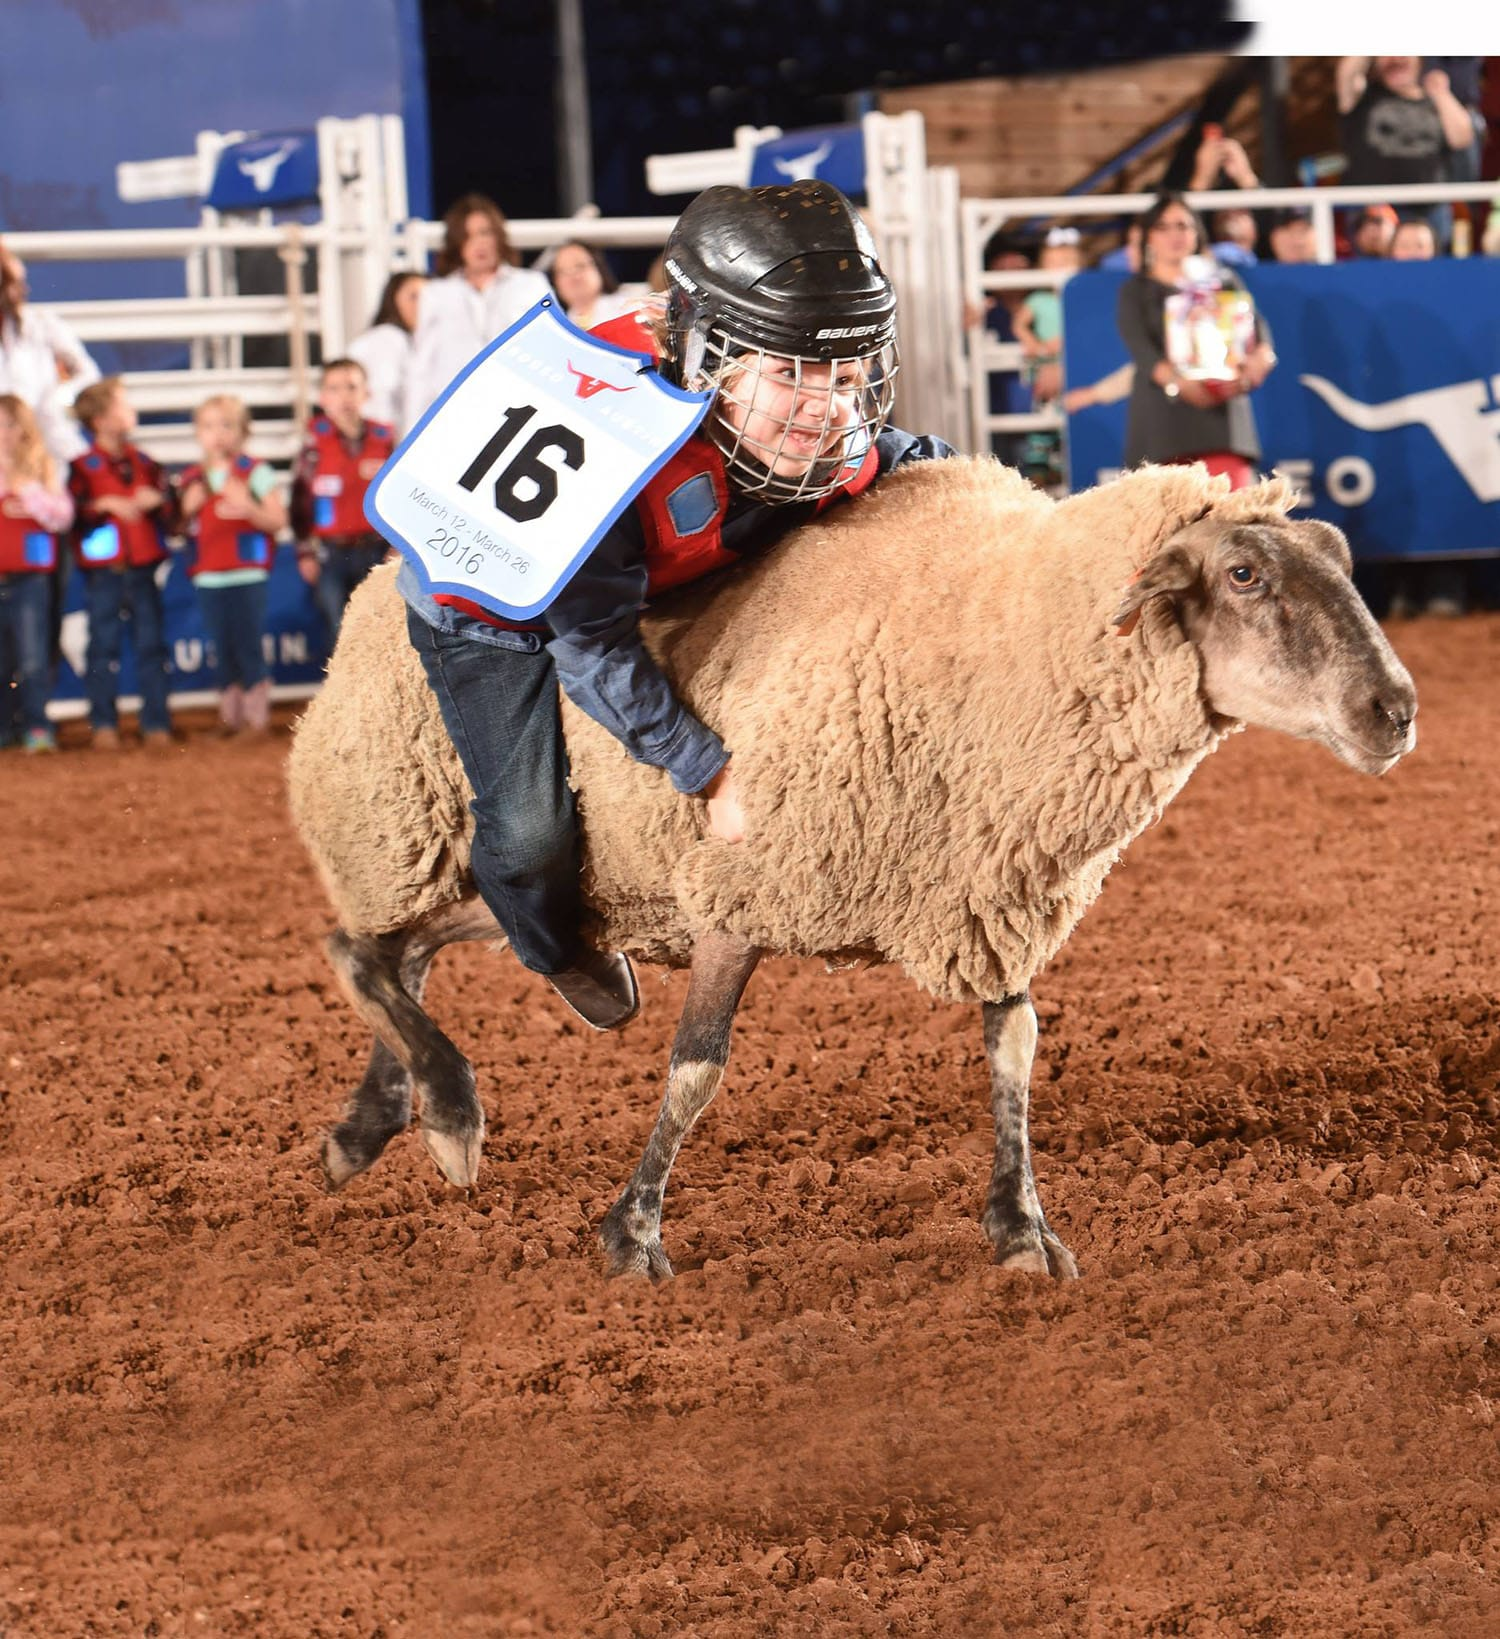 mutton bustin contestant riding sheep